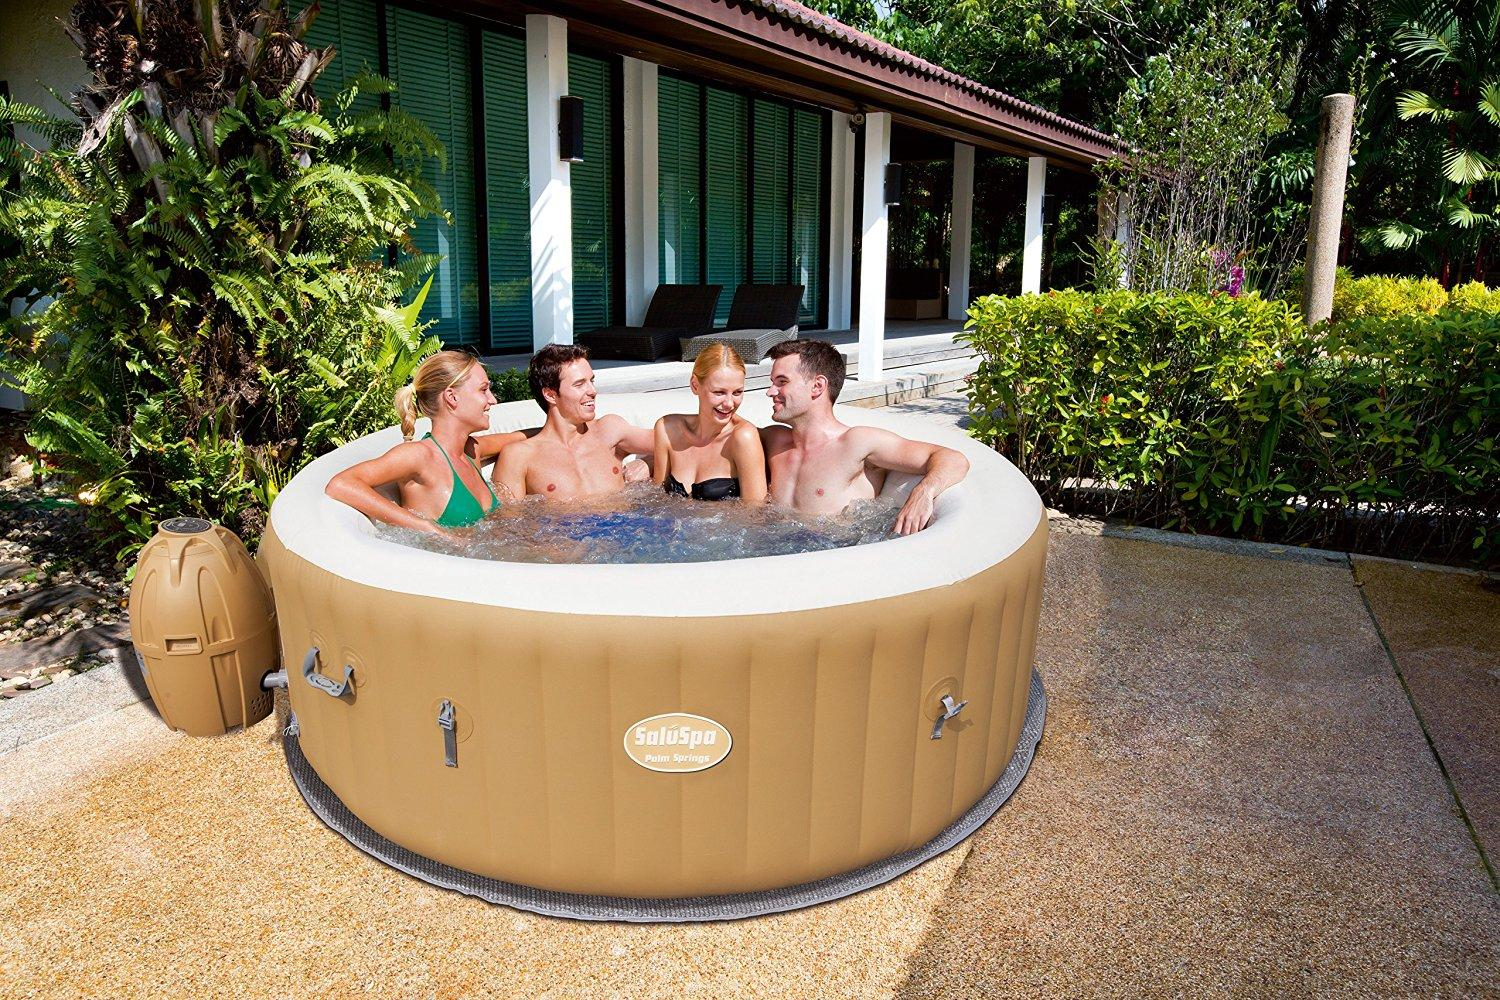 Bestway Lay Z Spa Inflatable Hot Tub Reviews 2016 | Pool Party App